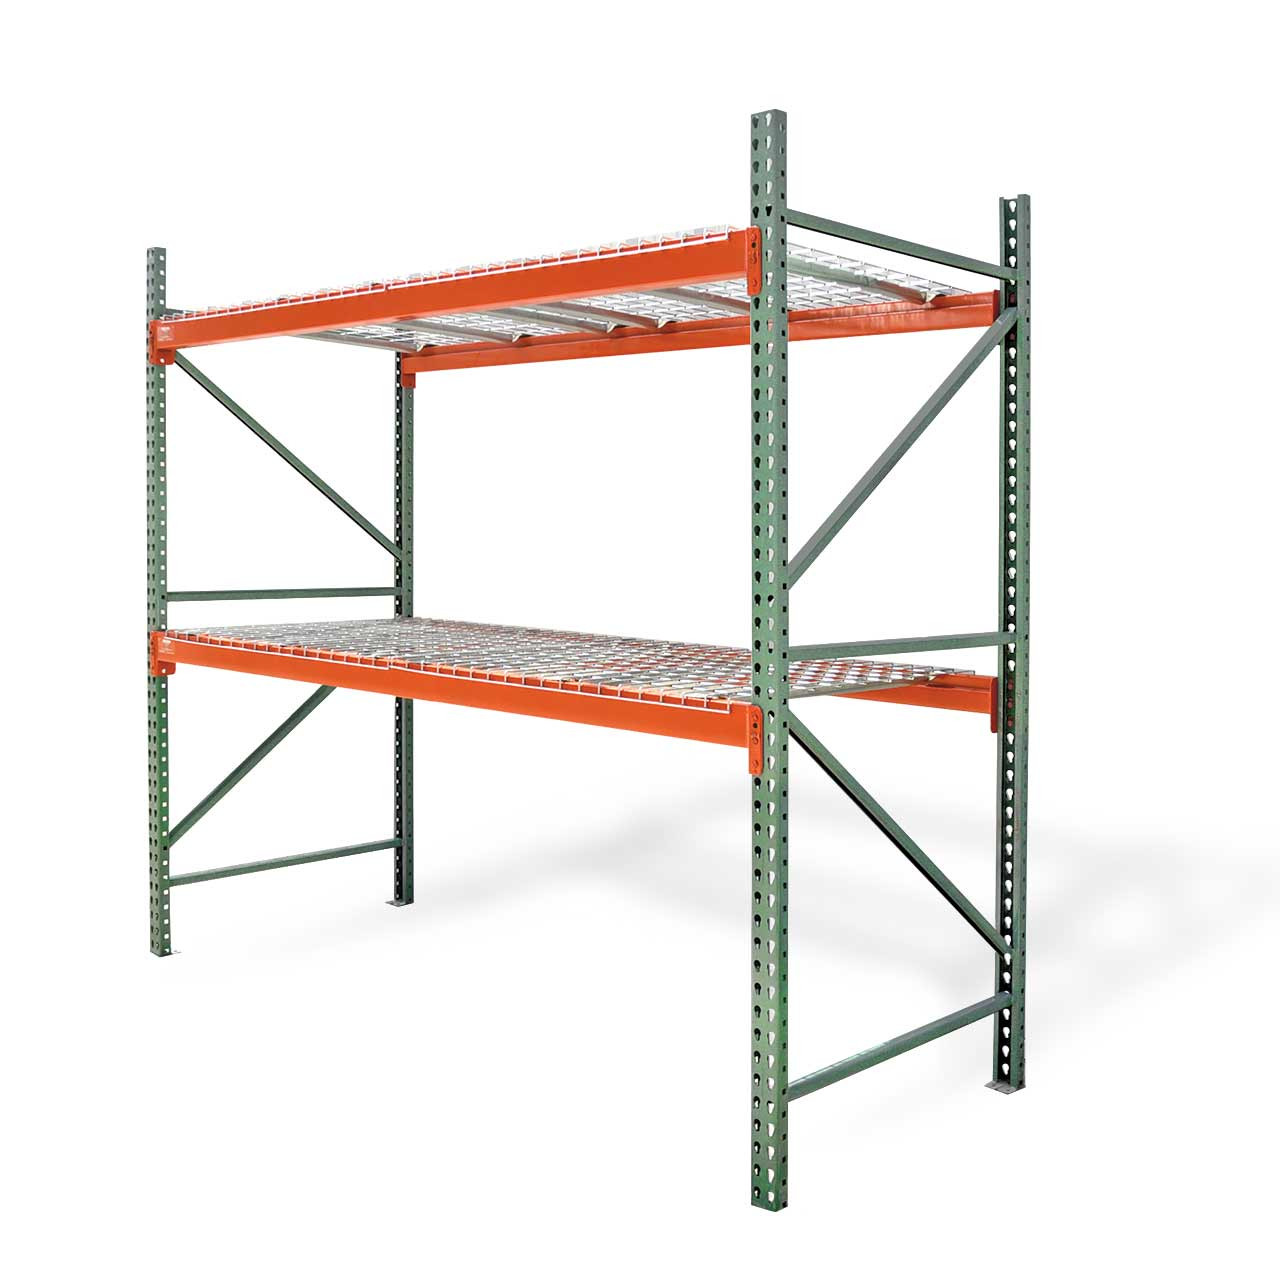 Pallet rack starter kit with wire decking